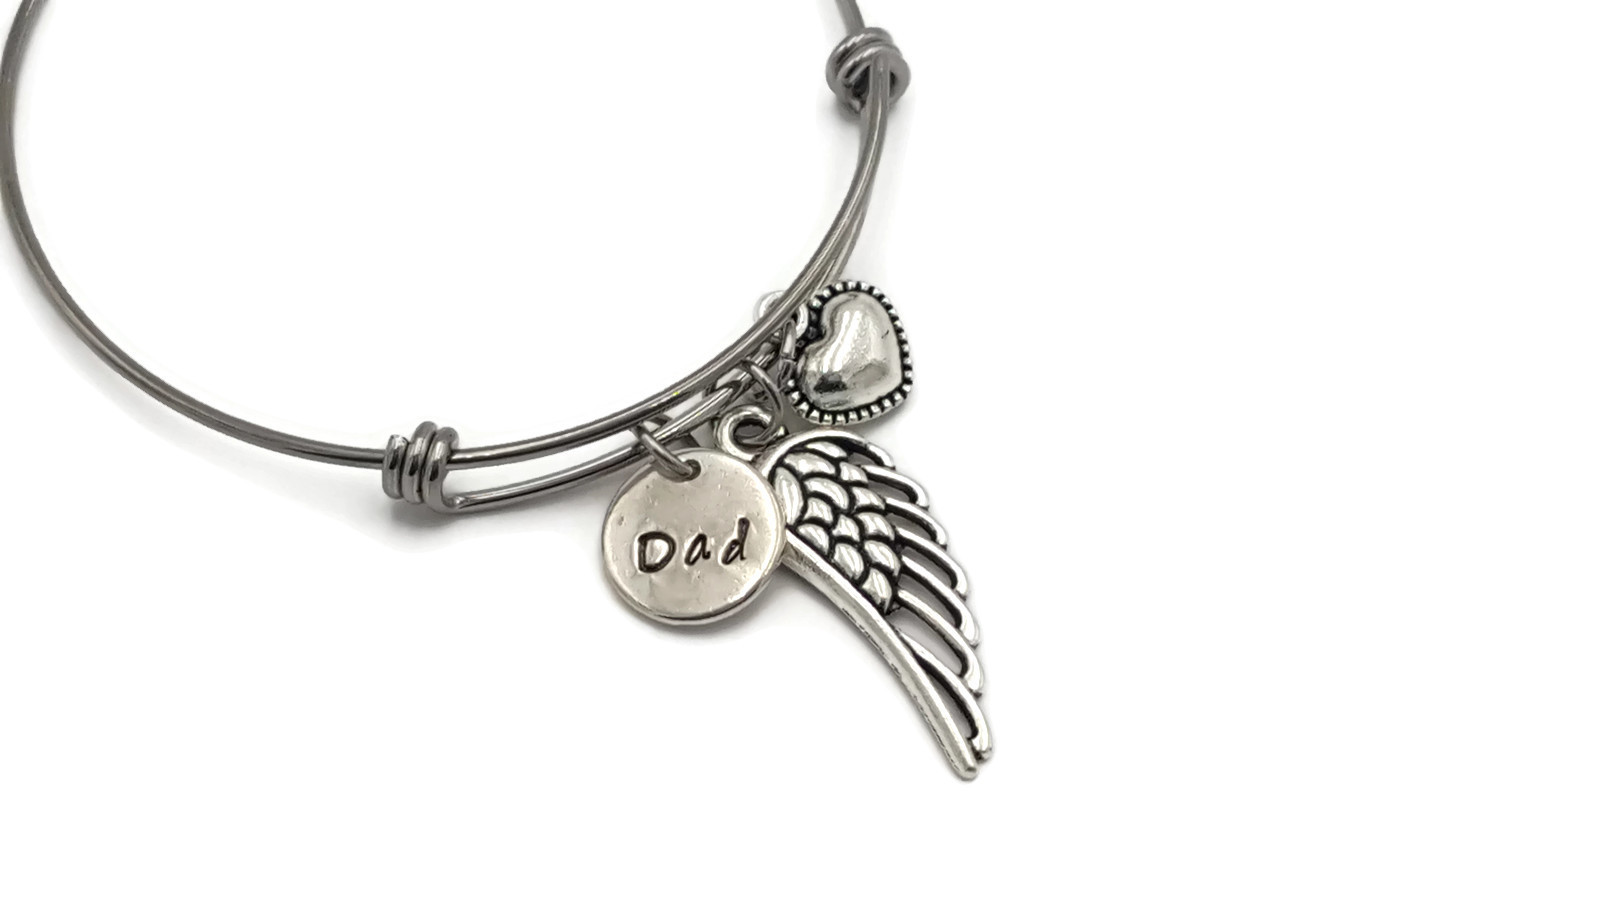 Loss of Dad Memorial Bracelet - In Loving Memory of Father